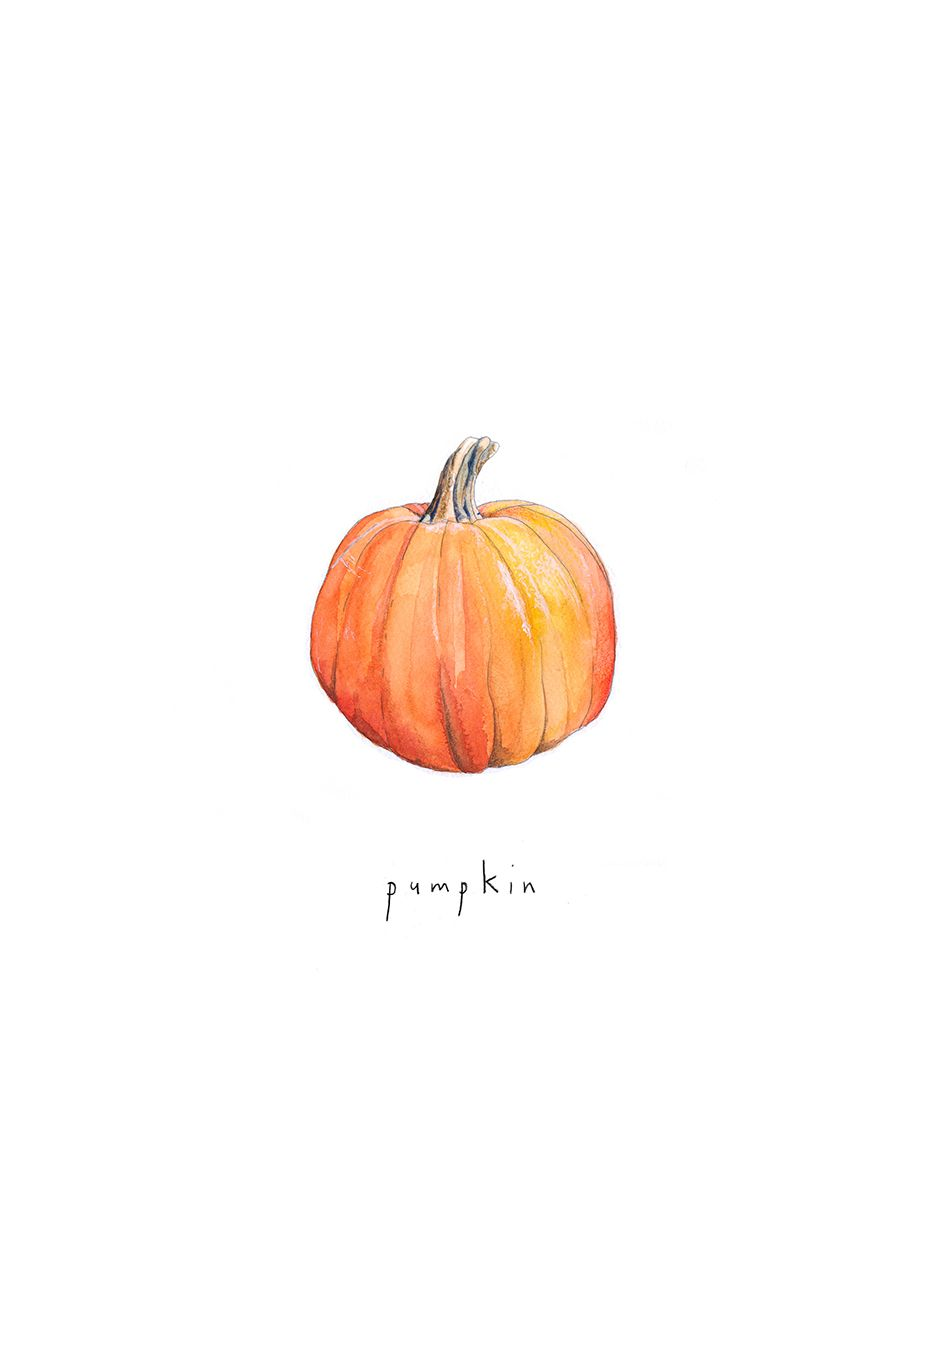 Pumpkin illustration by Aisling Teevan, watercolour and coloured pencil #octoberwallpaperiphone